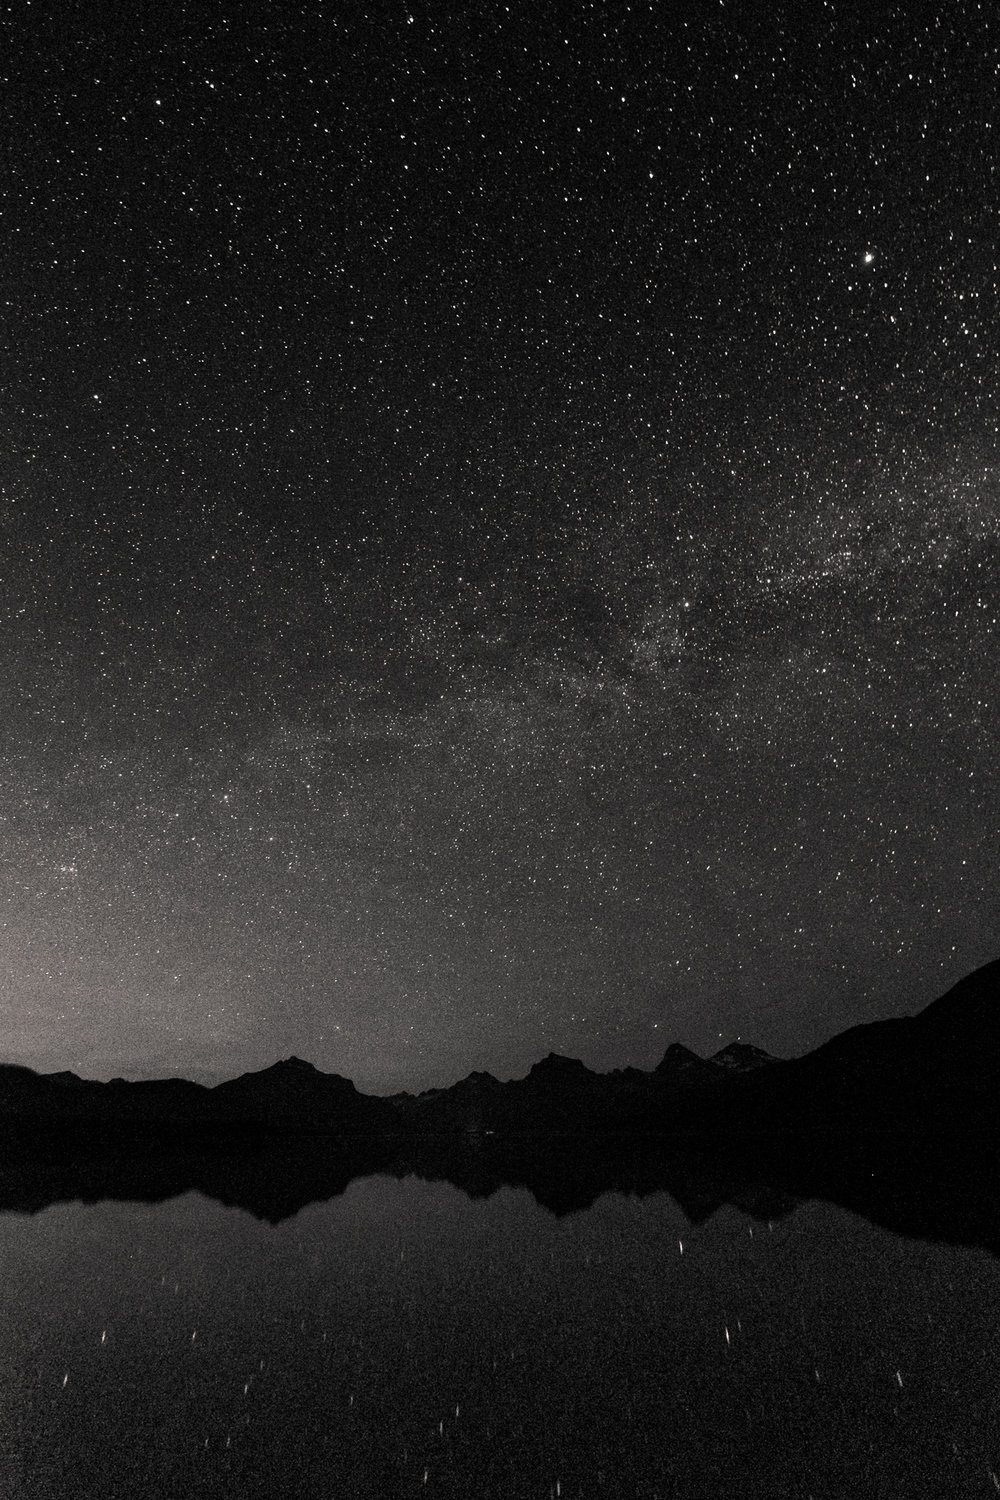 My first photo of the night, of the Milky Way floating over Lake McDonald and the distant mountain ranges.  Fujifilm X-T1 ,  10-24mm f/4 lens . 30 seconds, f/4, ISO 6400.